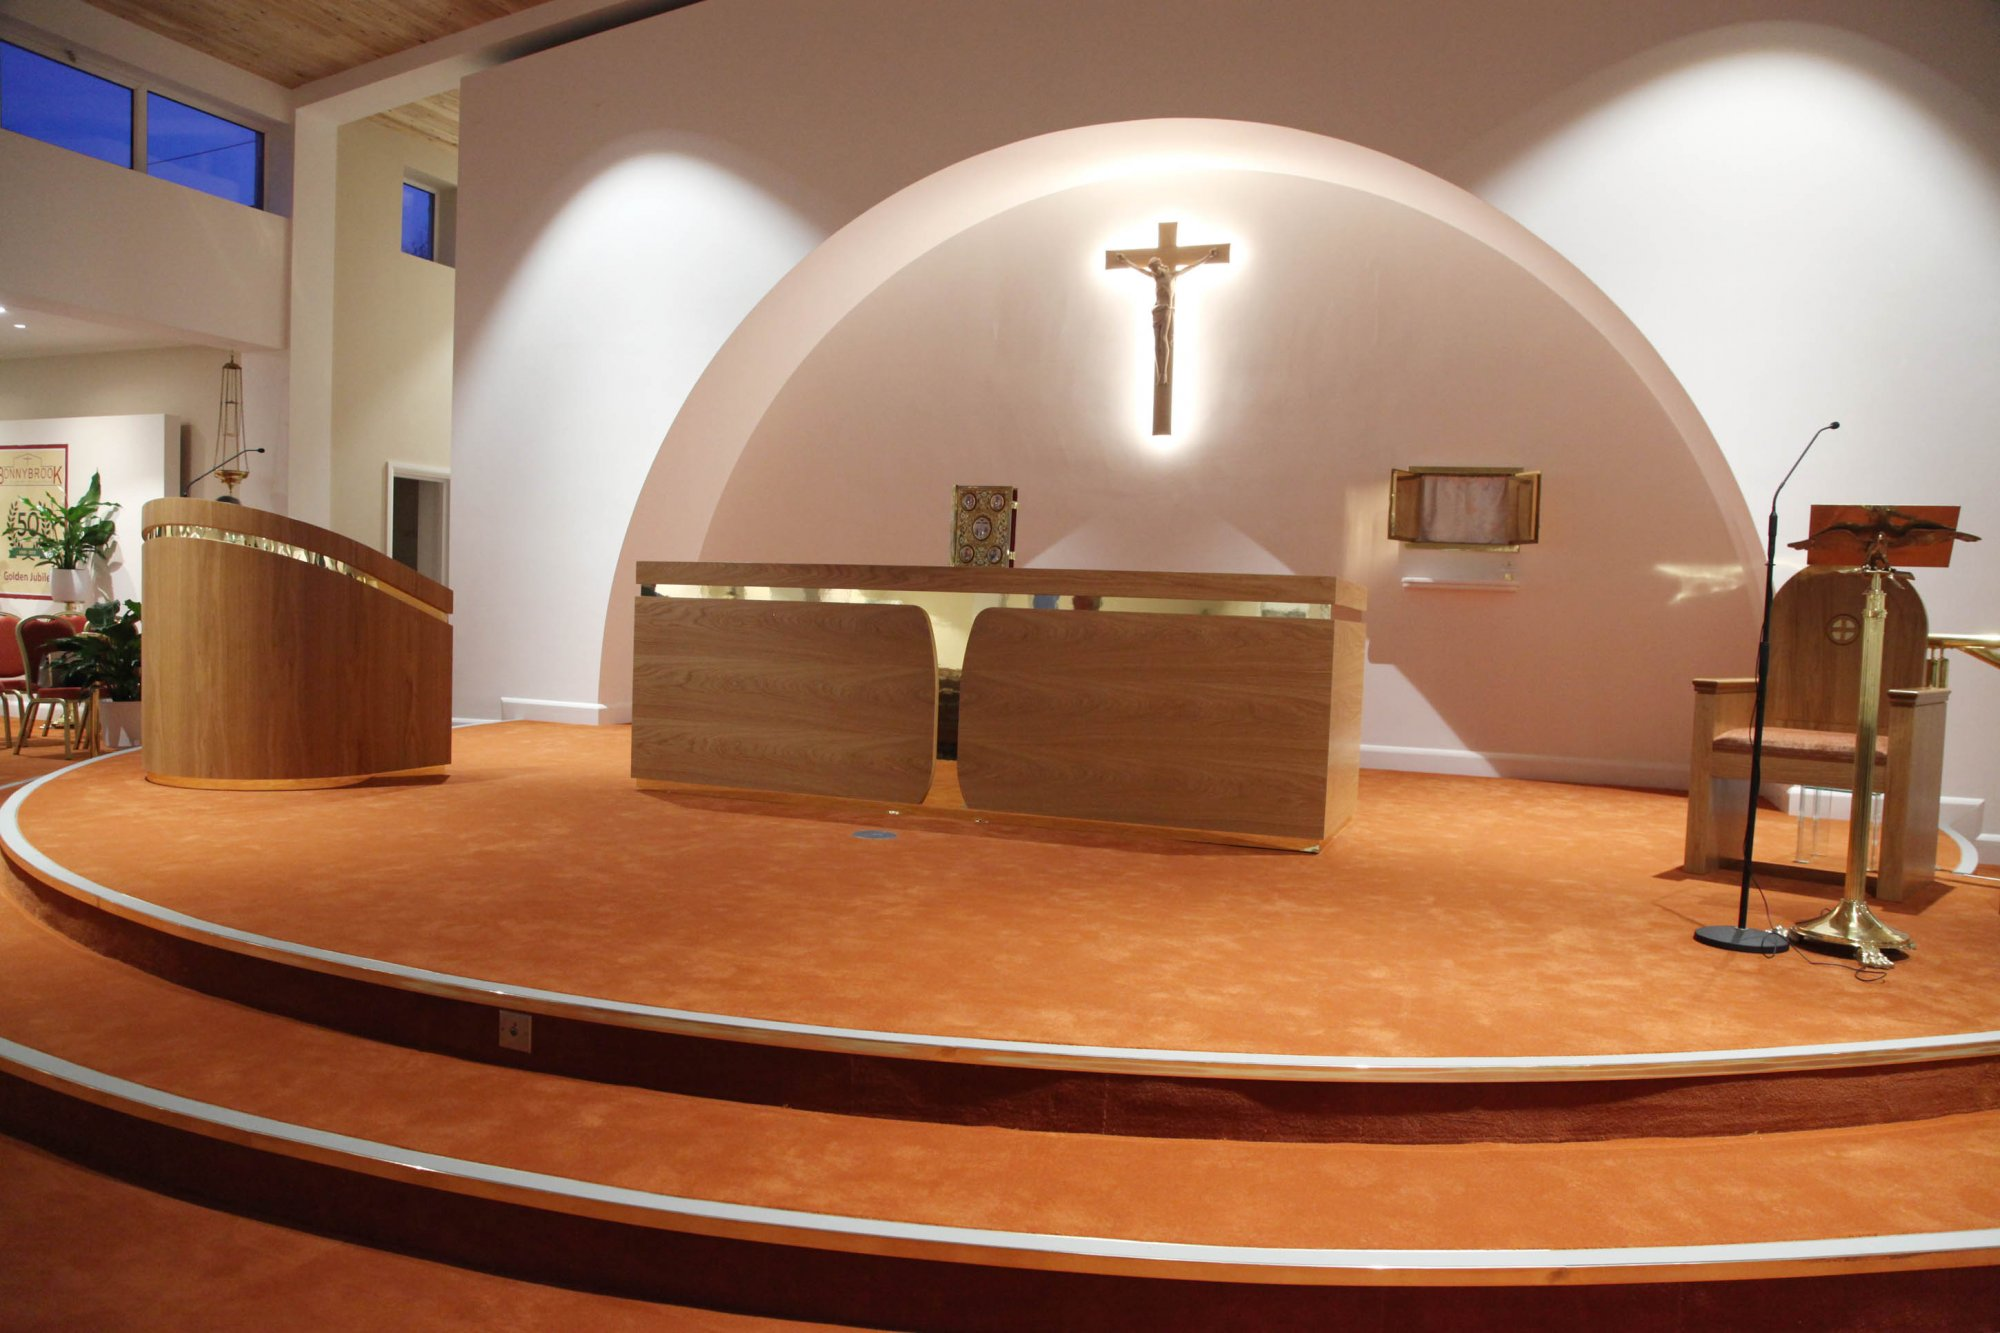 Images from our Church